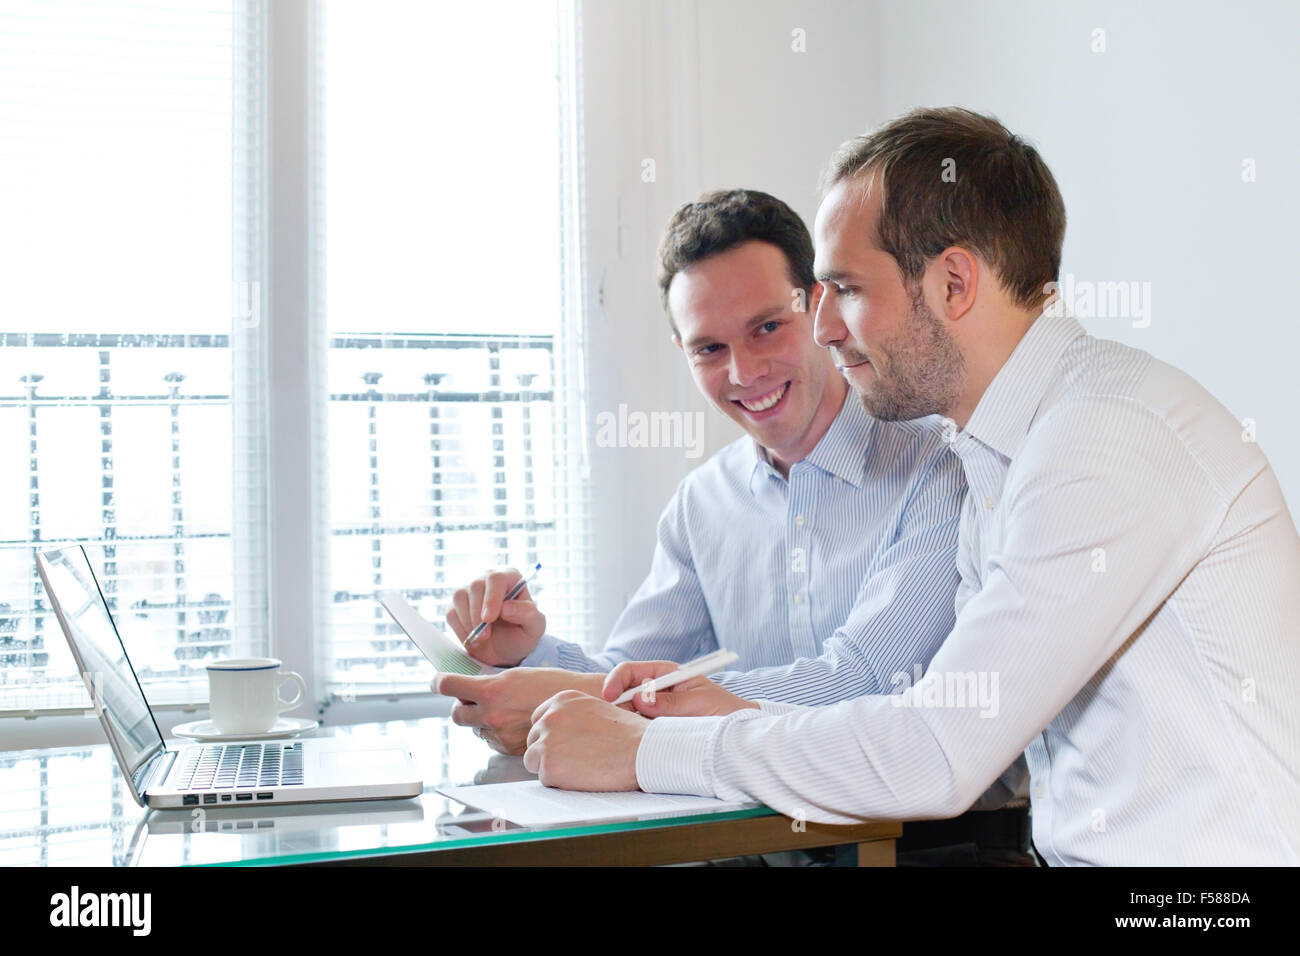 two smiling happy business men working on project in the office - Stock Image